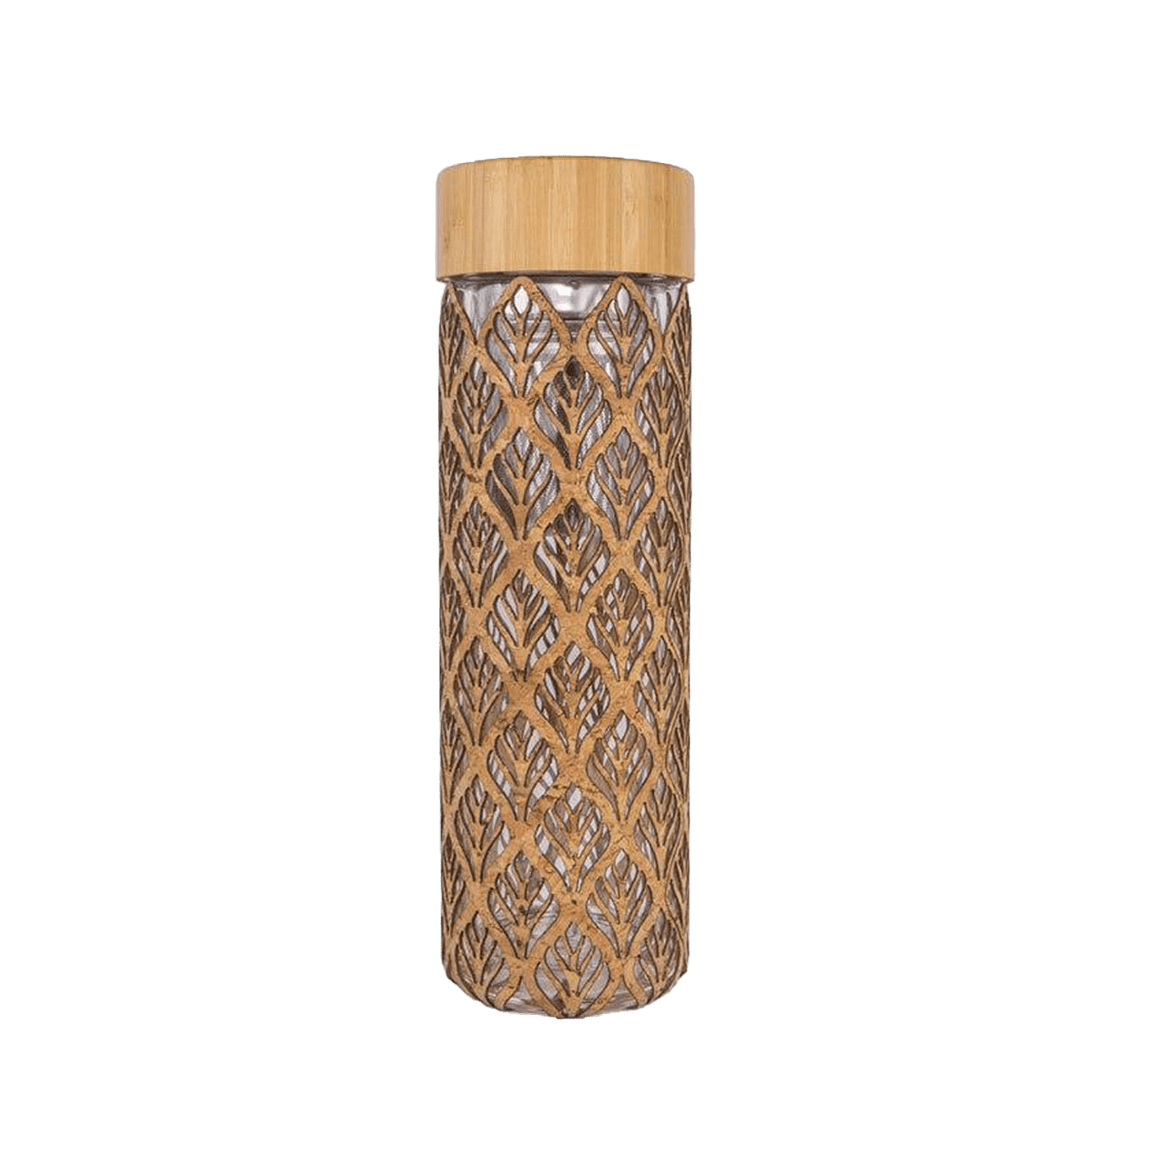 Glass Tea Infuser - Leaf - Naturally Anti-Microbial Hypoallergenic Sustainable Eco-Friendly Cork